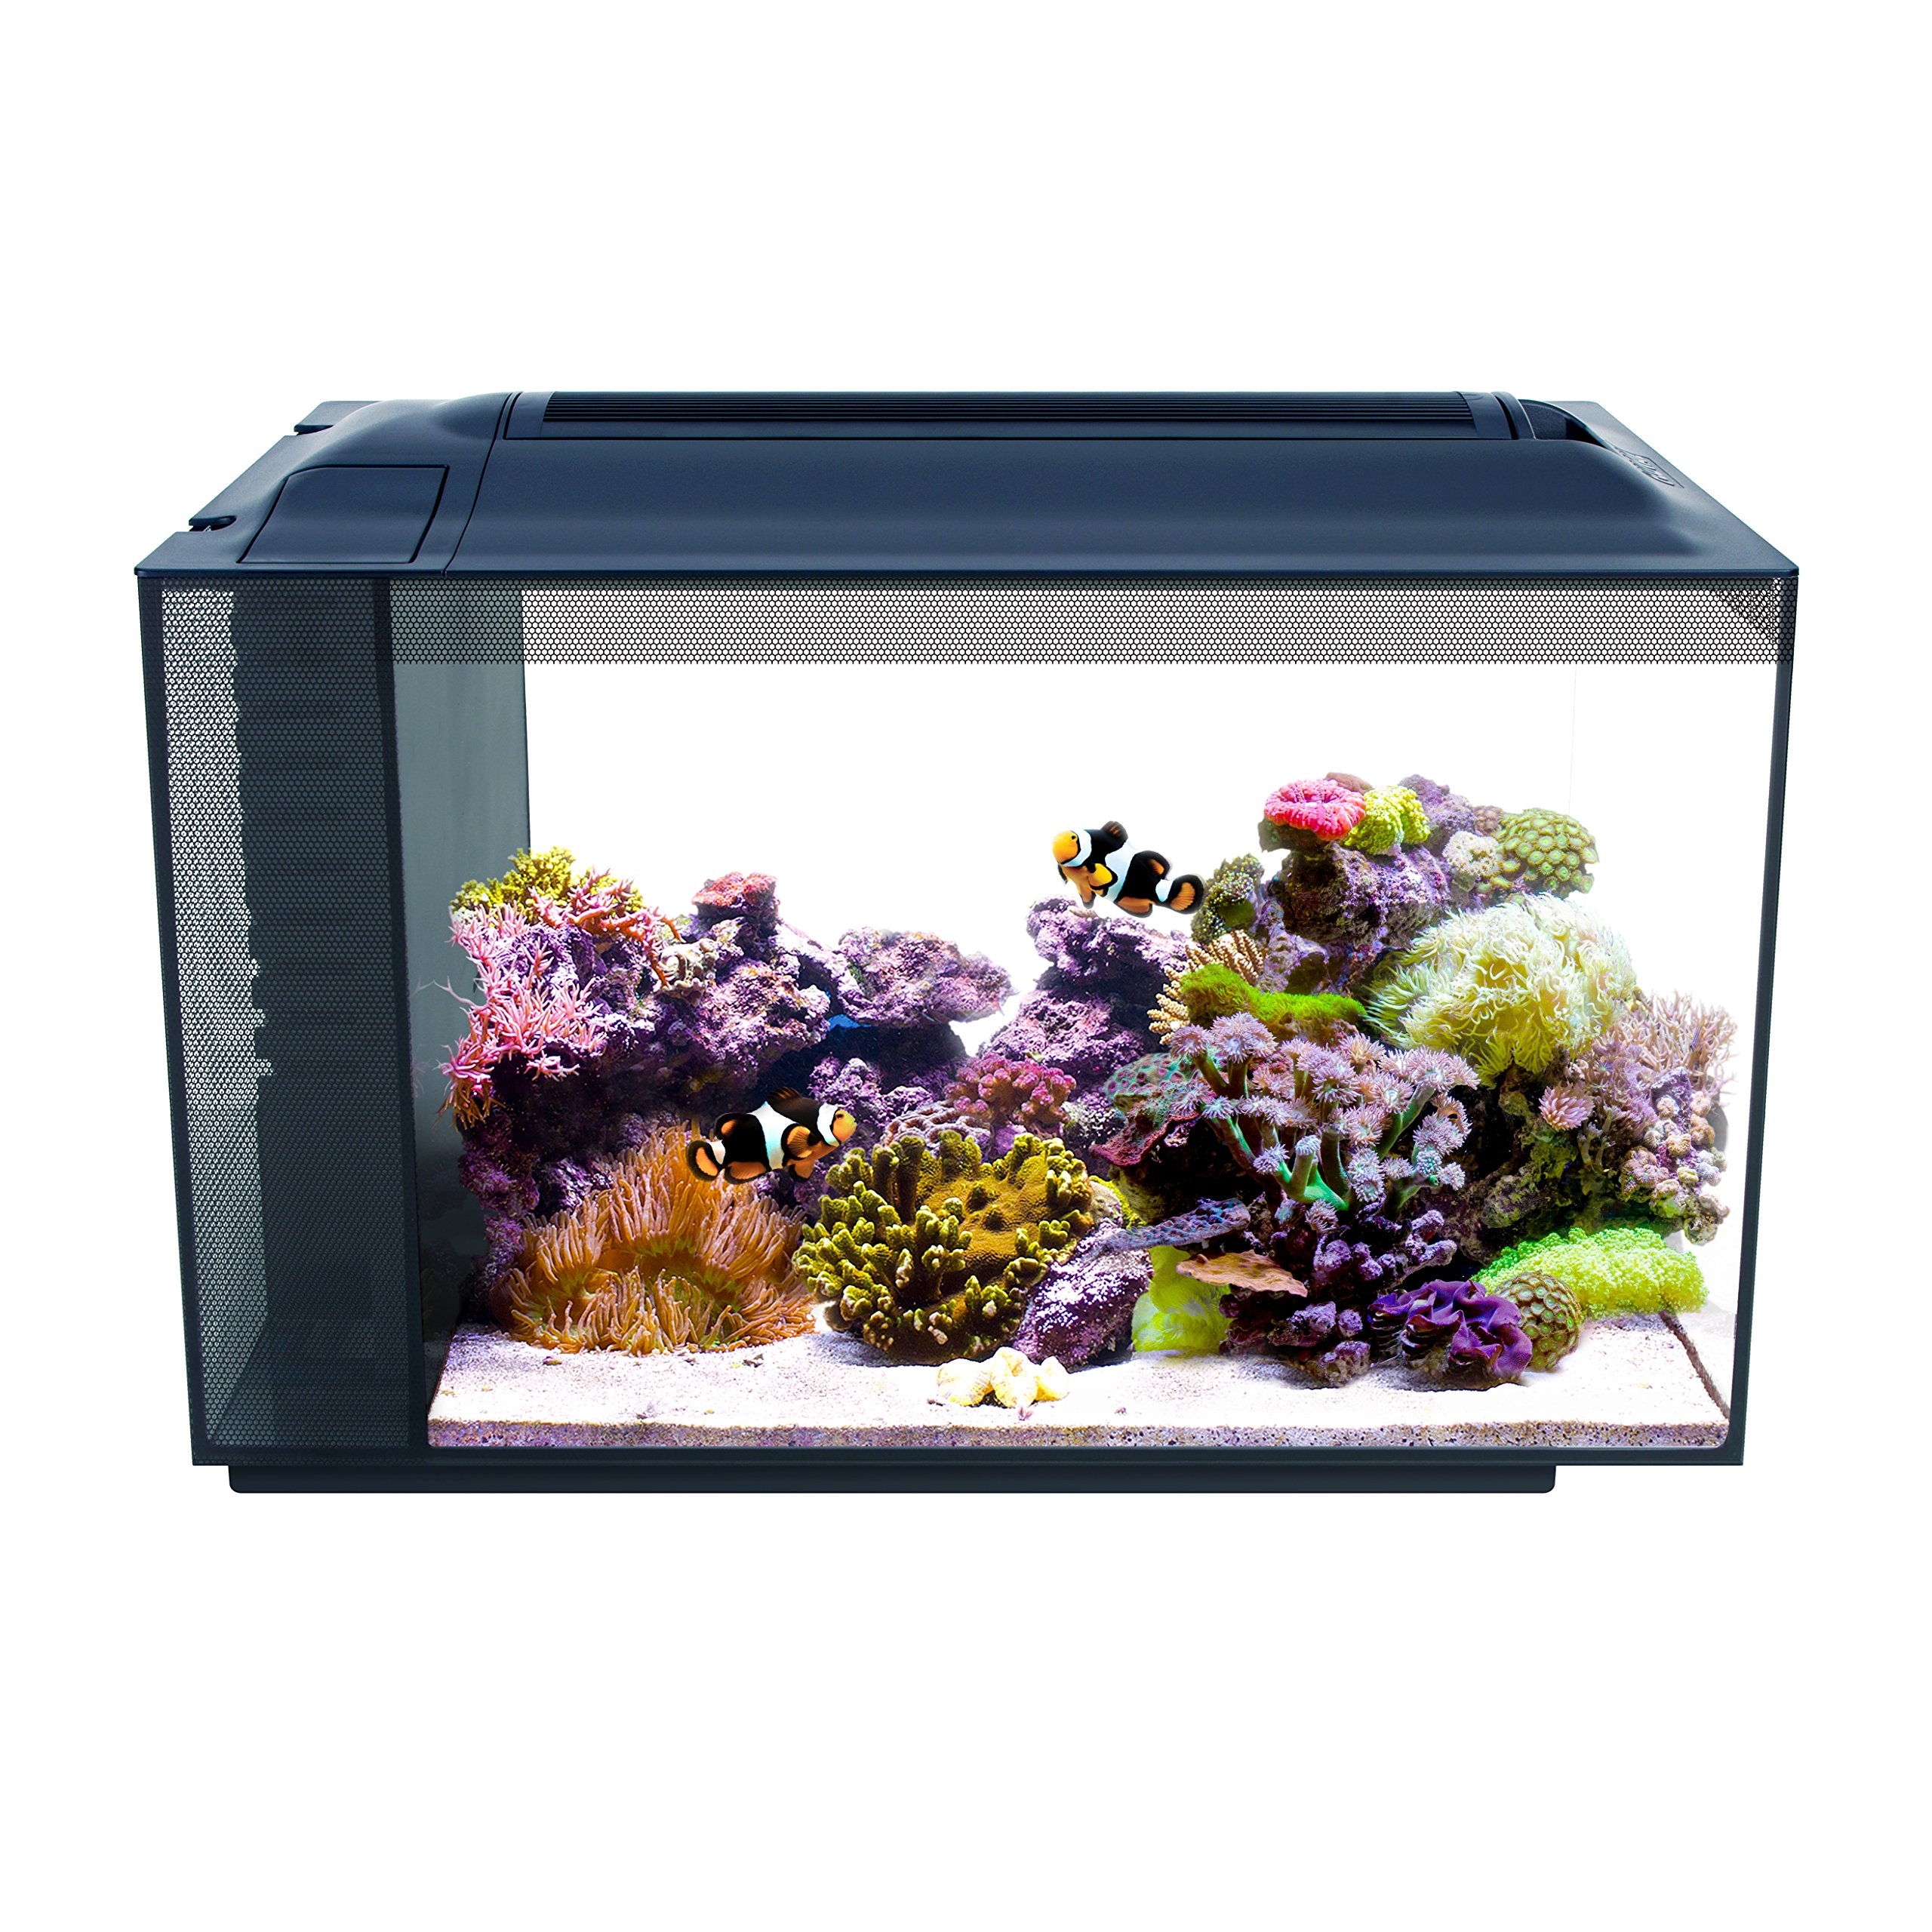 Fluval 10531A1 SEA EVO XII Aquarium Kit, 13.5 gal by Fluval